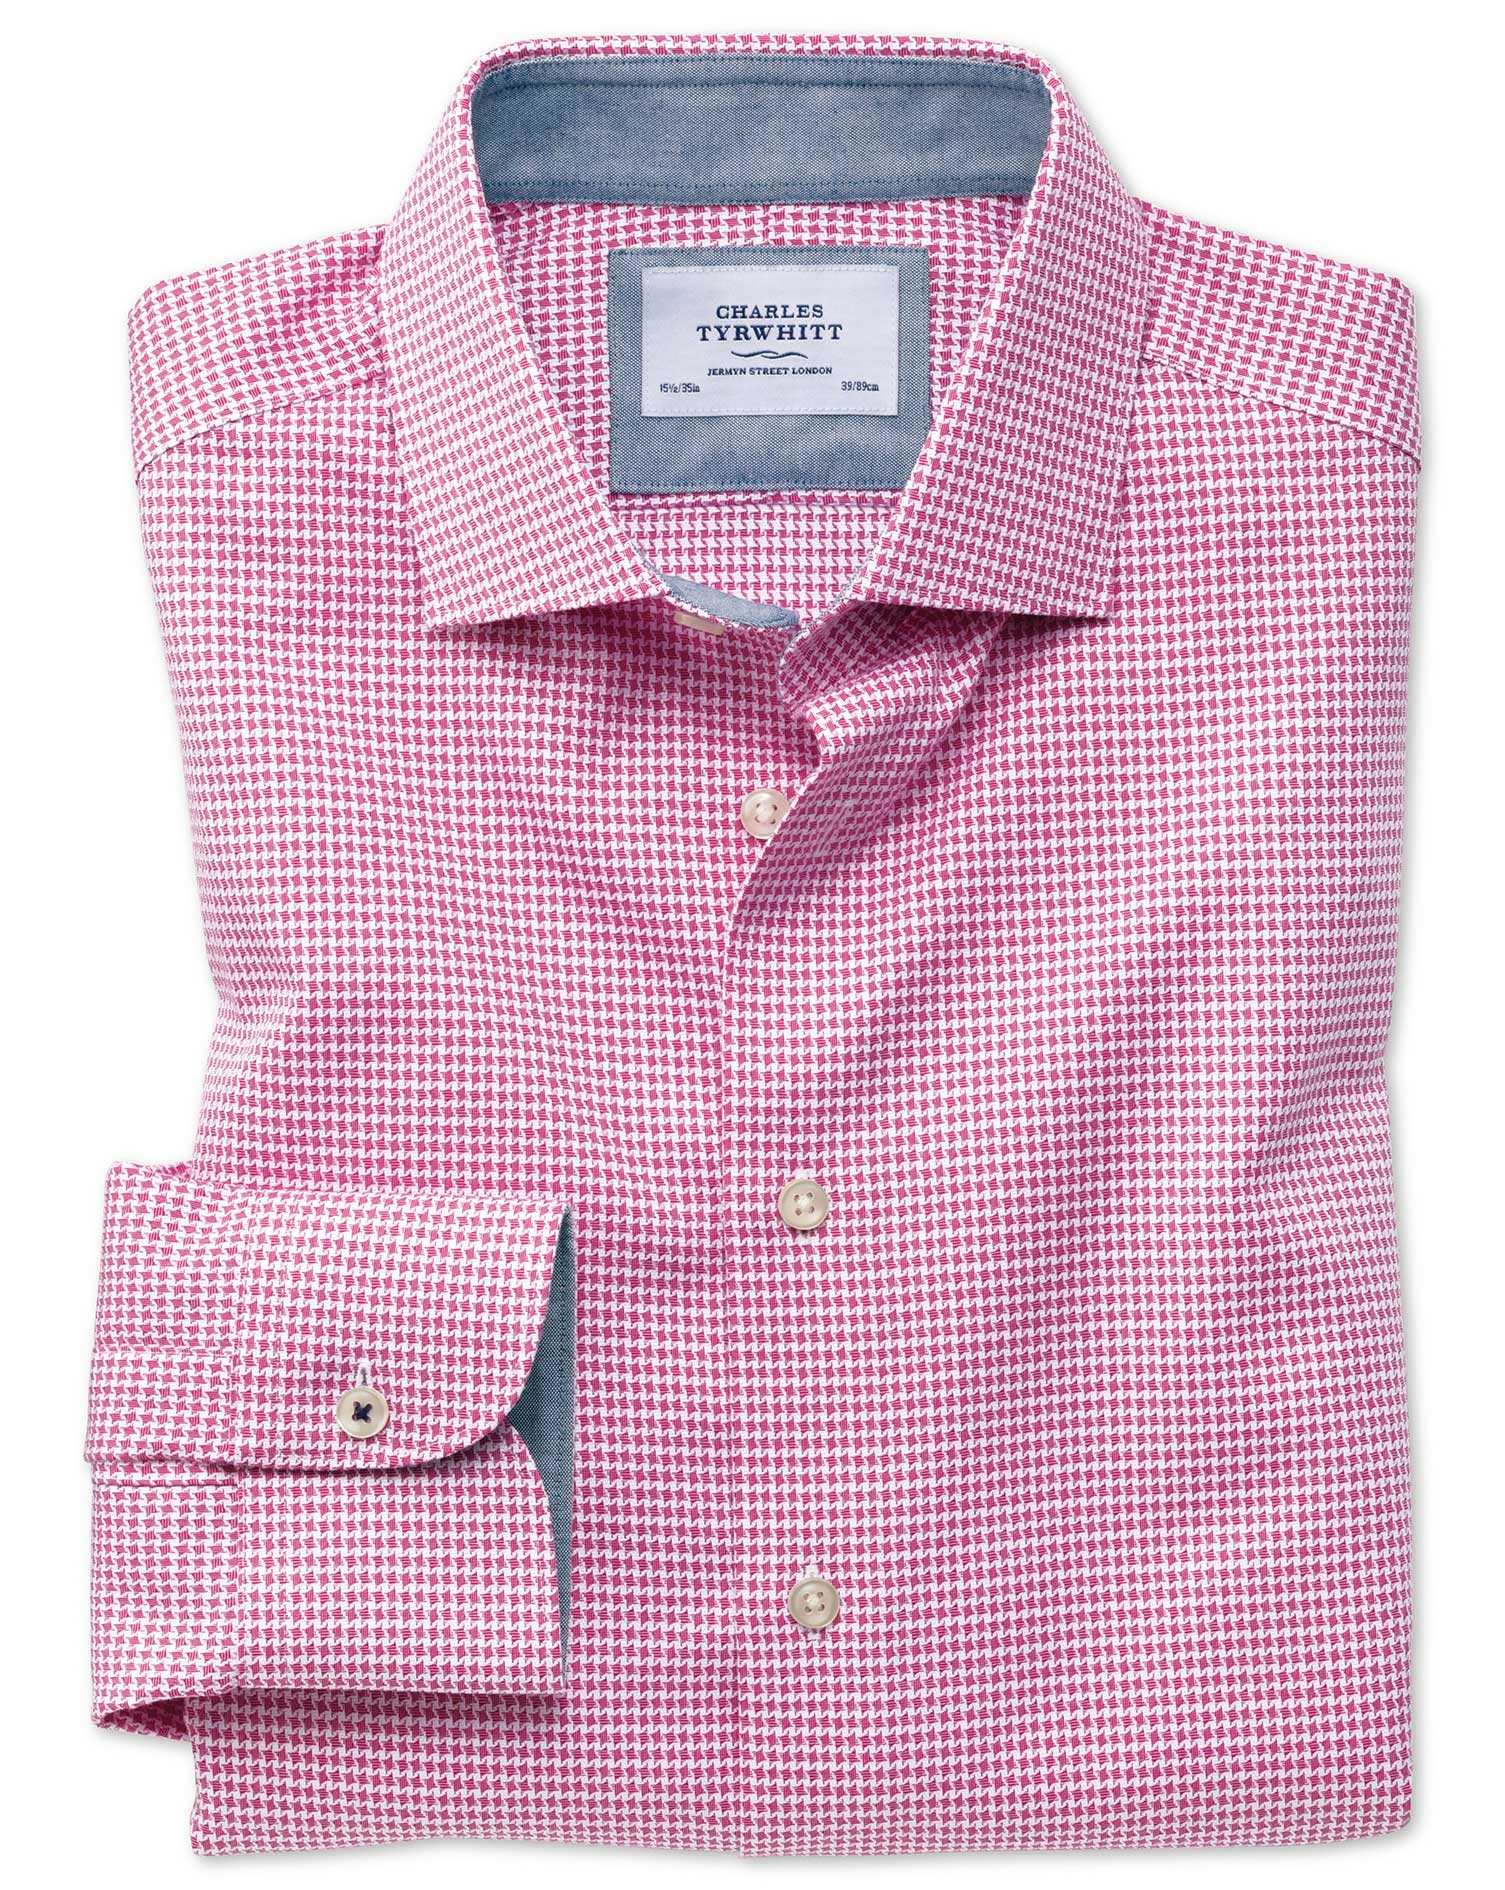 Classic Fit Semi-Cutaway Business Casual Non-Iron Modern Textures Pink Puppytooth Cotton Formal Shir